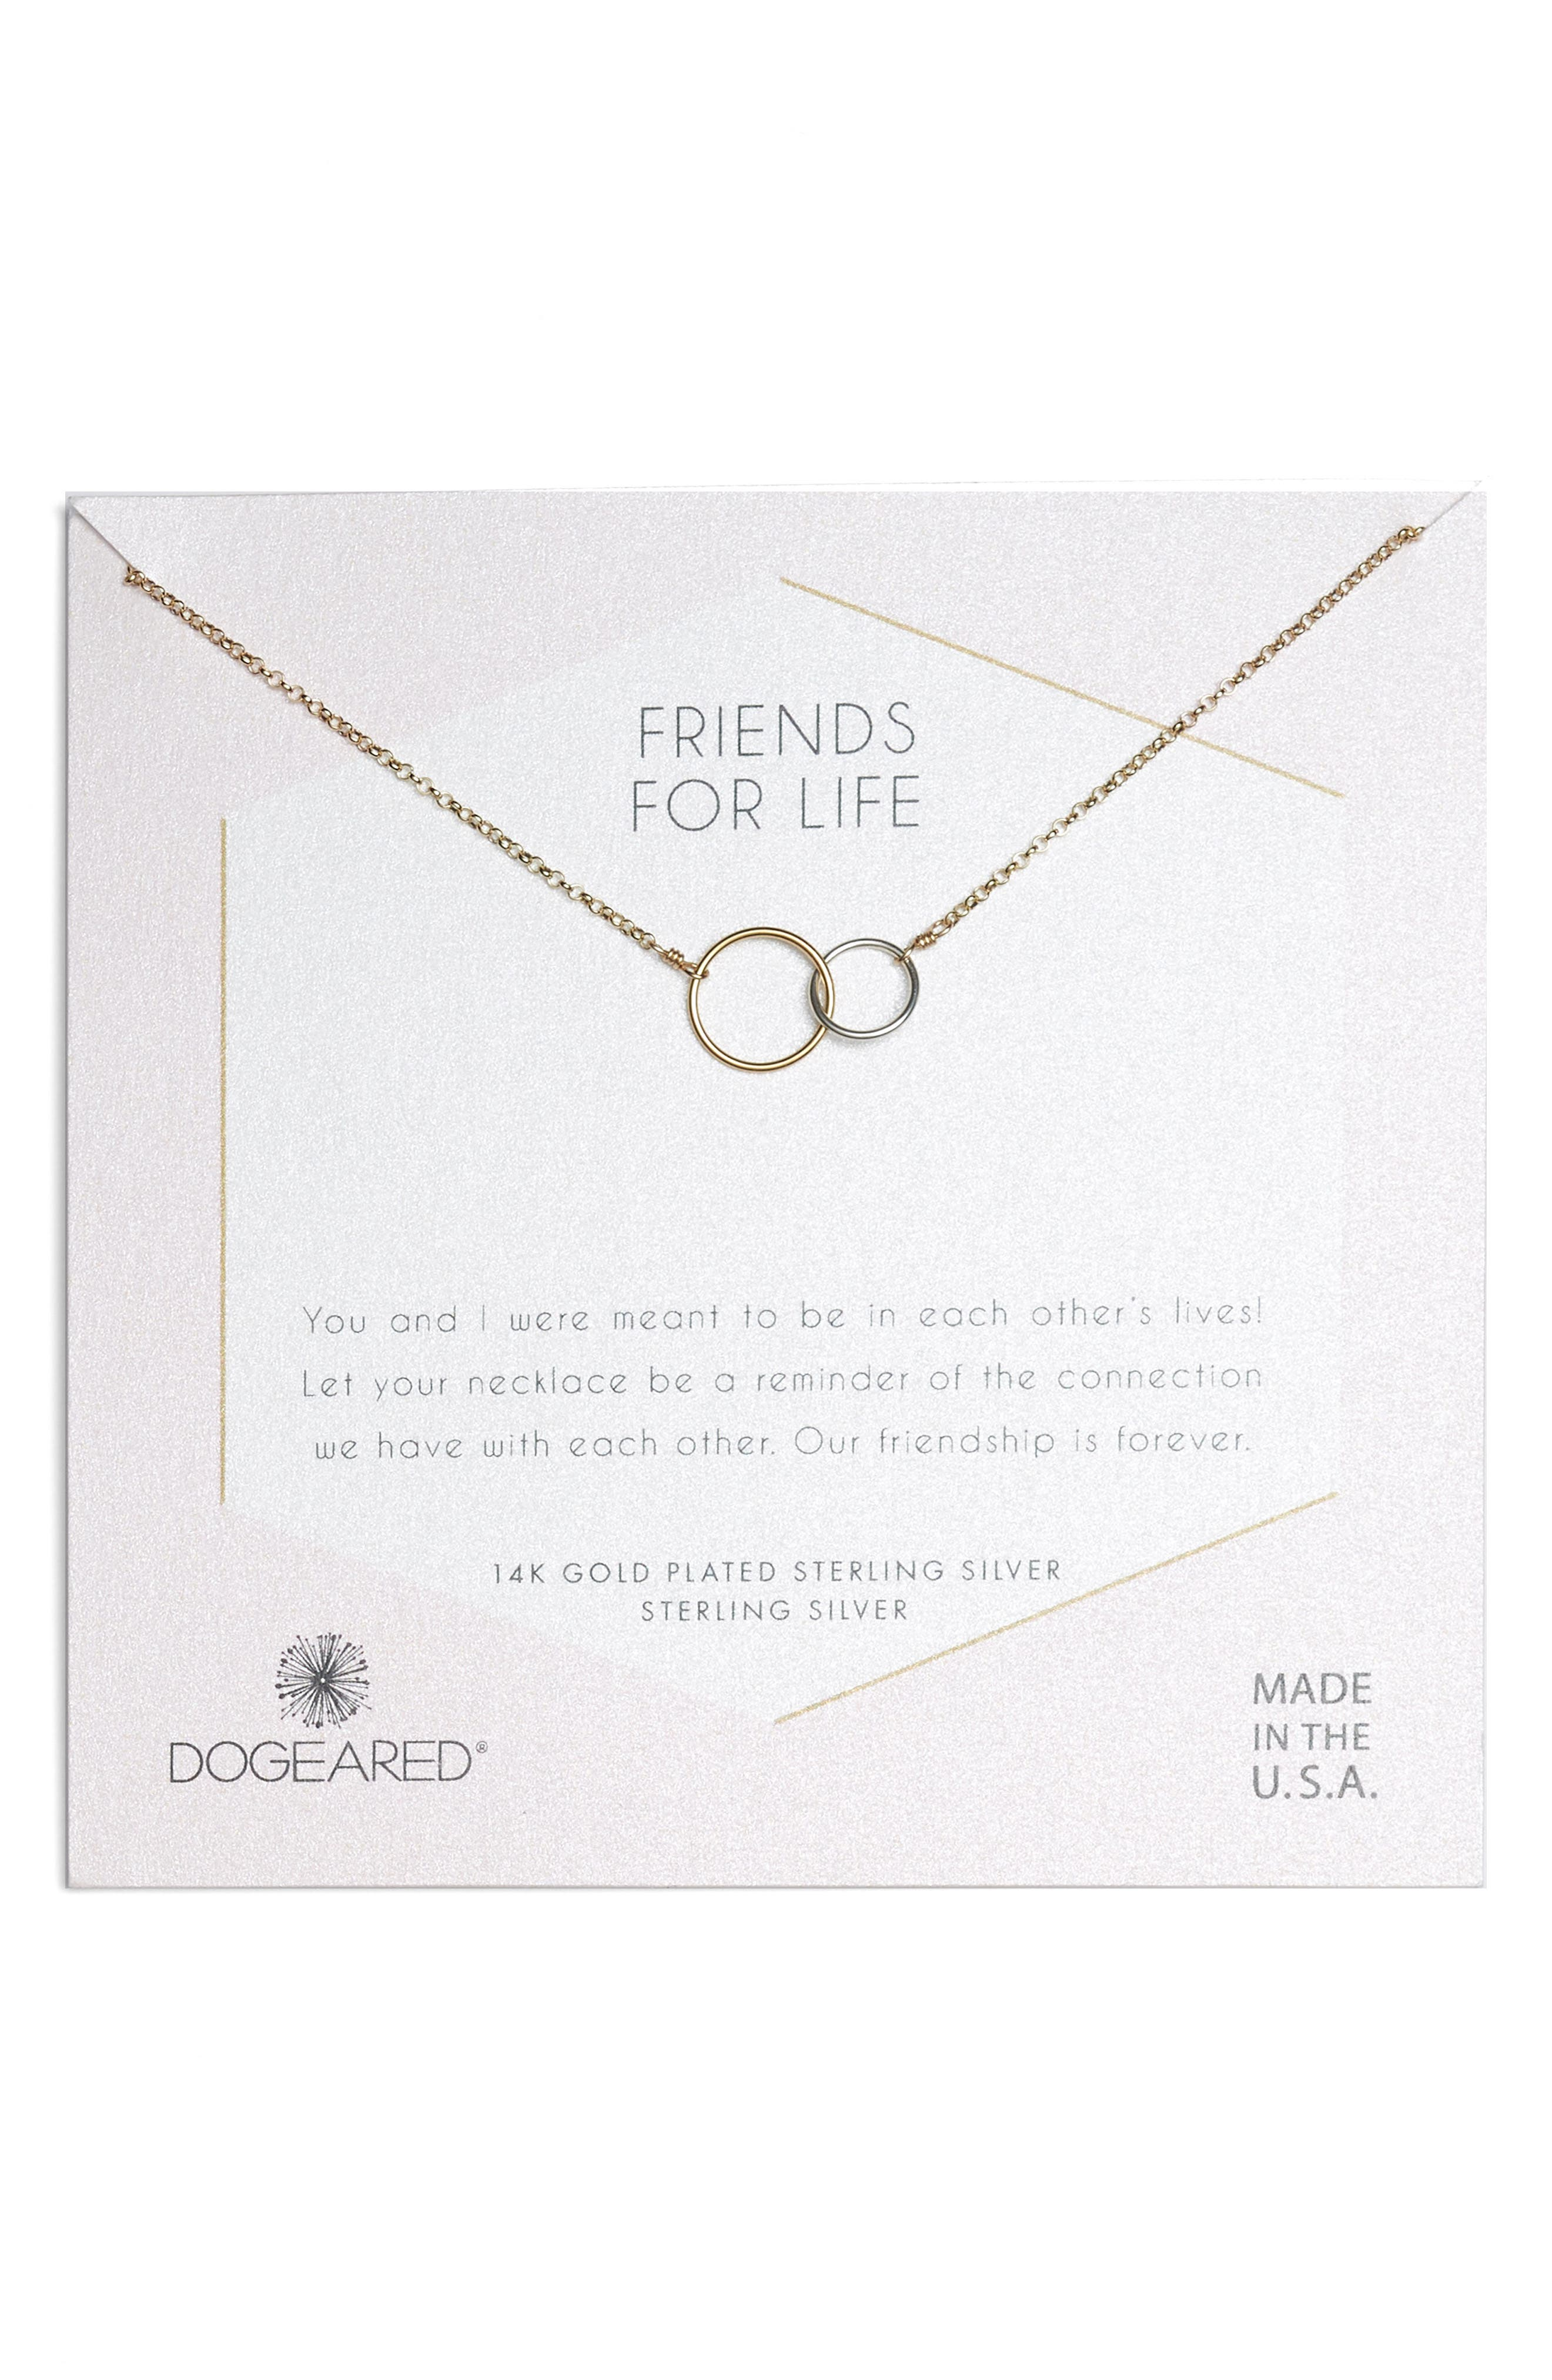 Friends for Life Necklace,                         Main,                         color, Gold